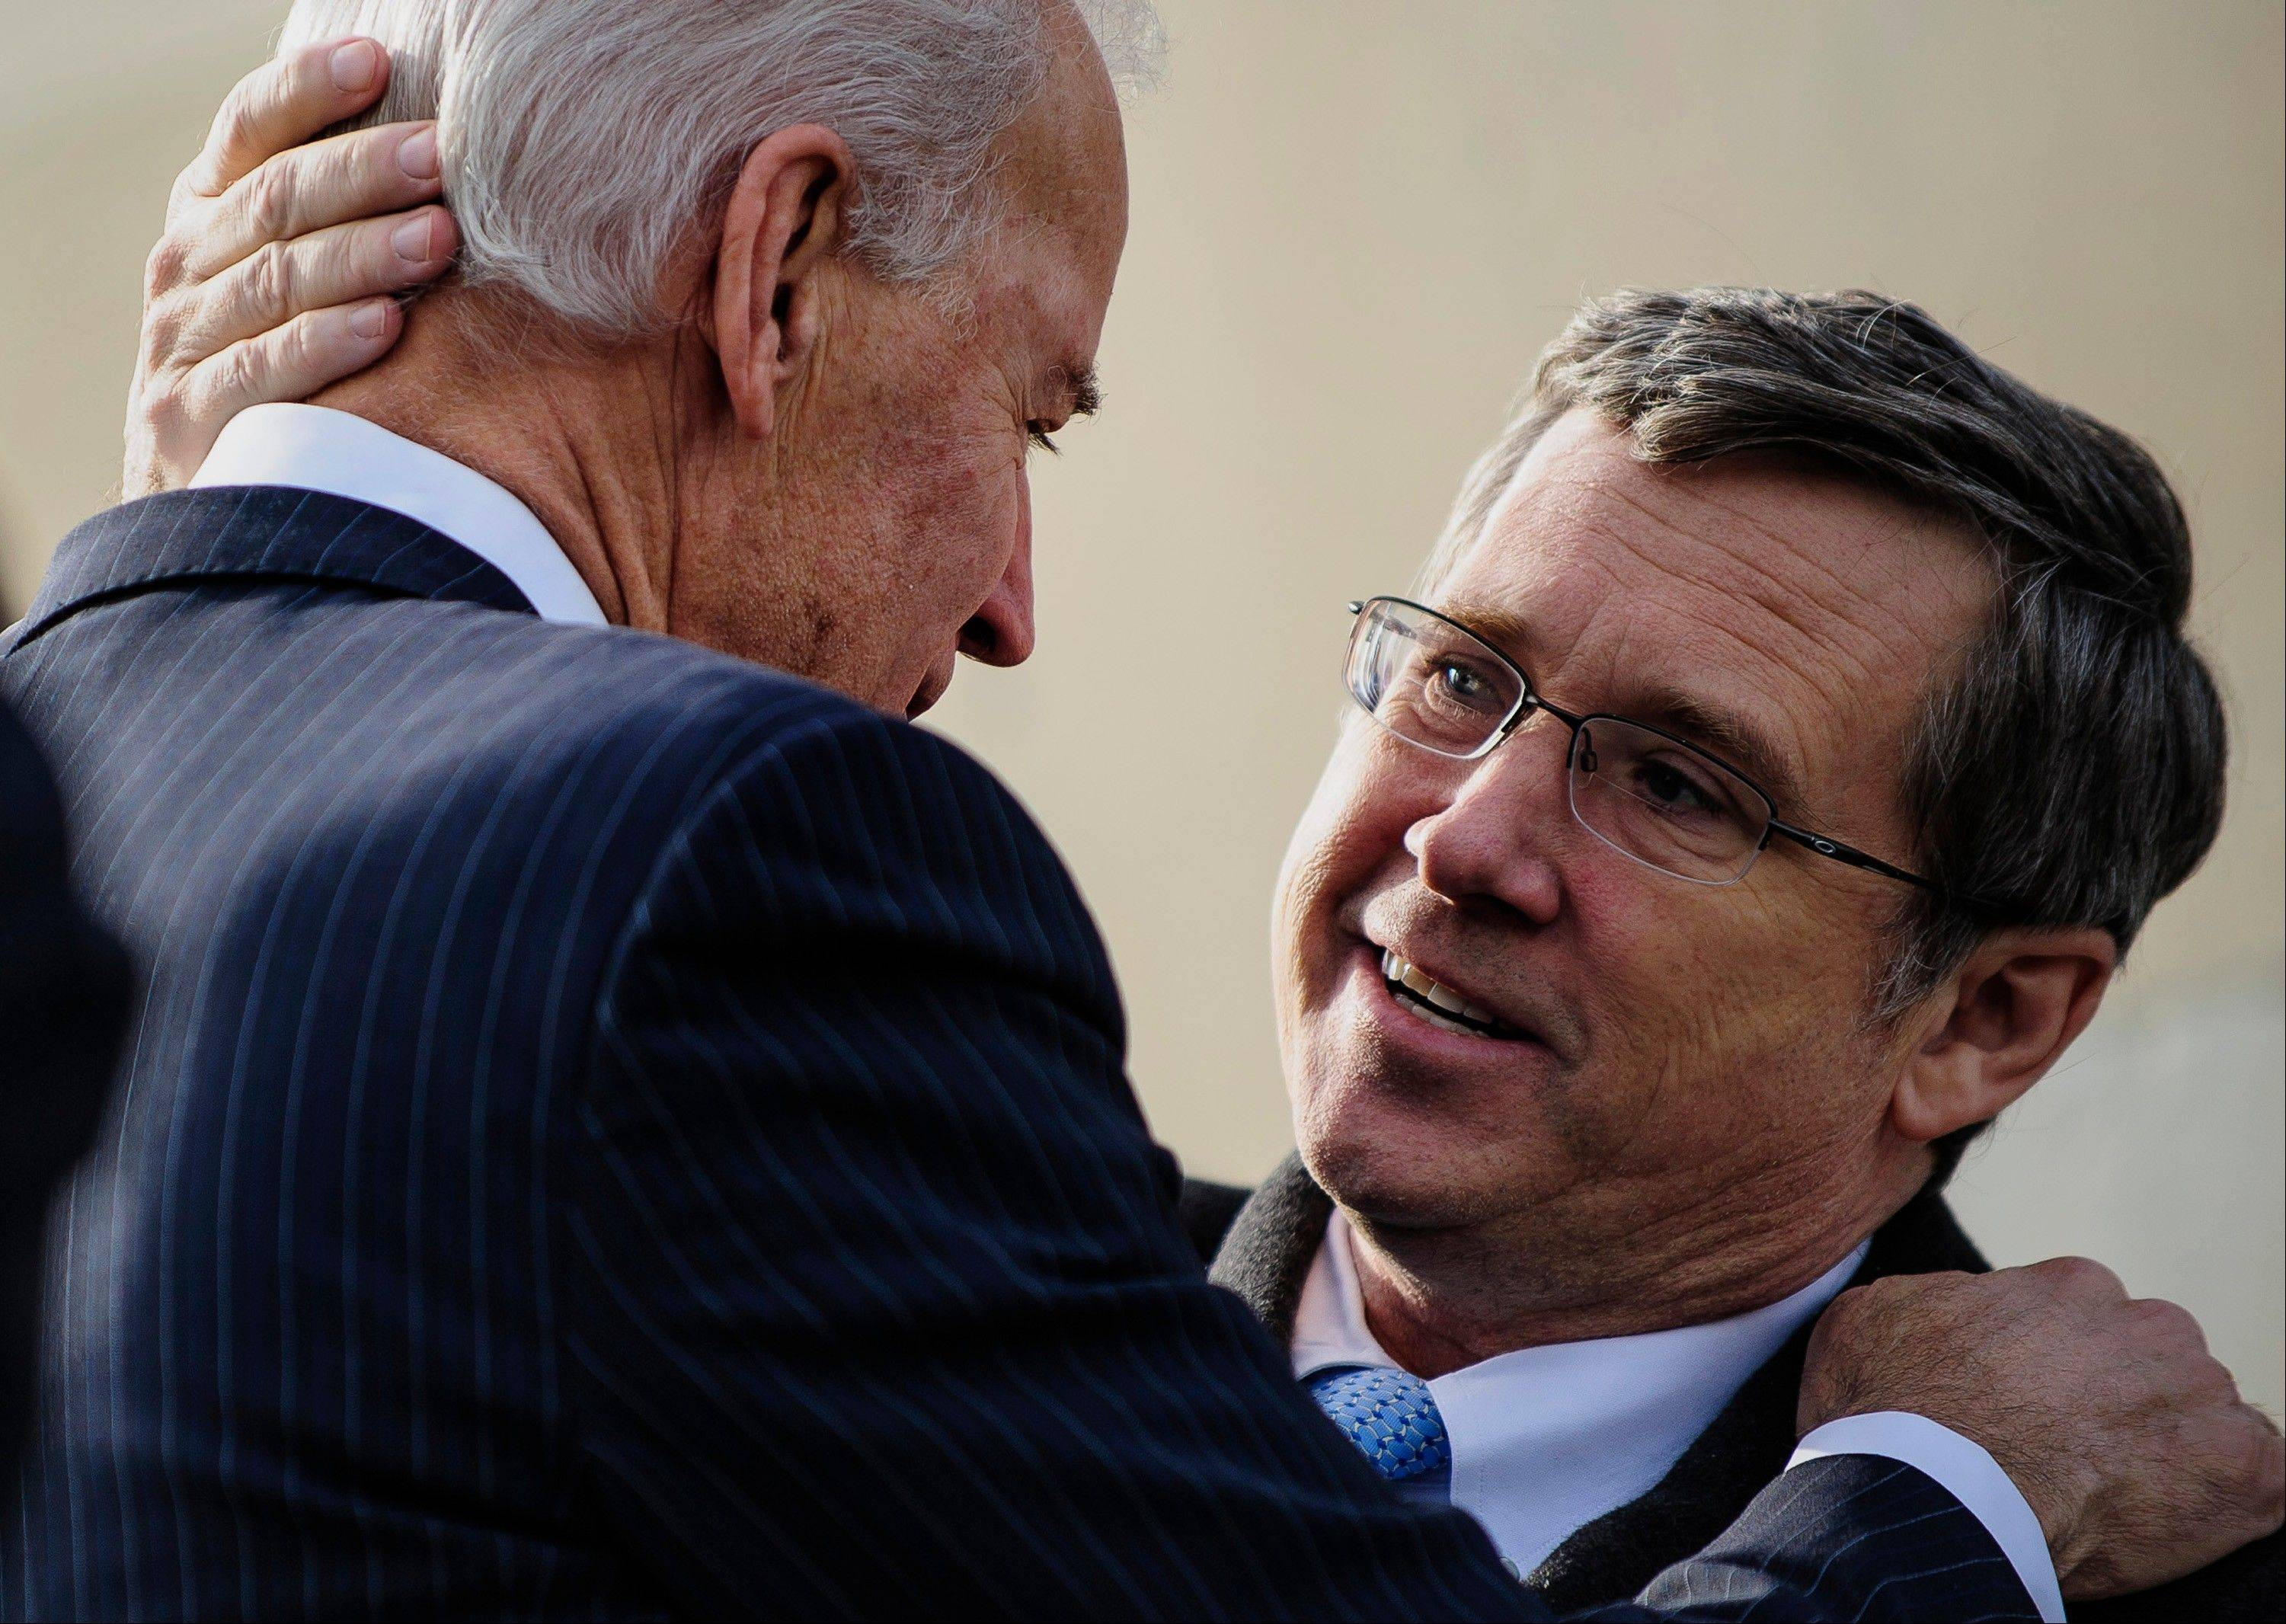 Vice President Joseph �Joe� Biden, left, greets Senator Mark Kirk, a Republican from Illinois, on the steps of the U.S. Capitol in Washington, D.C., U.S., on Thursday, Jan. 3, 2013. Kirk returned for the first time since he suffered a stroke on Jan. 23, 2012.